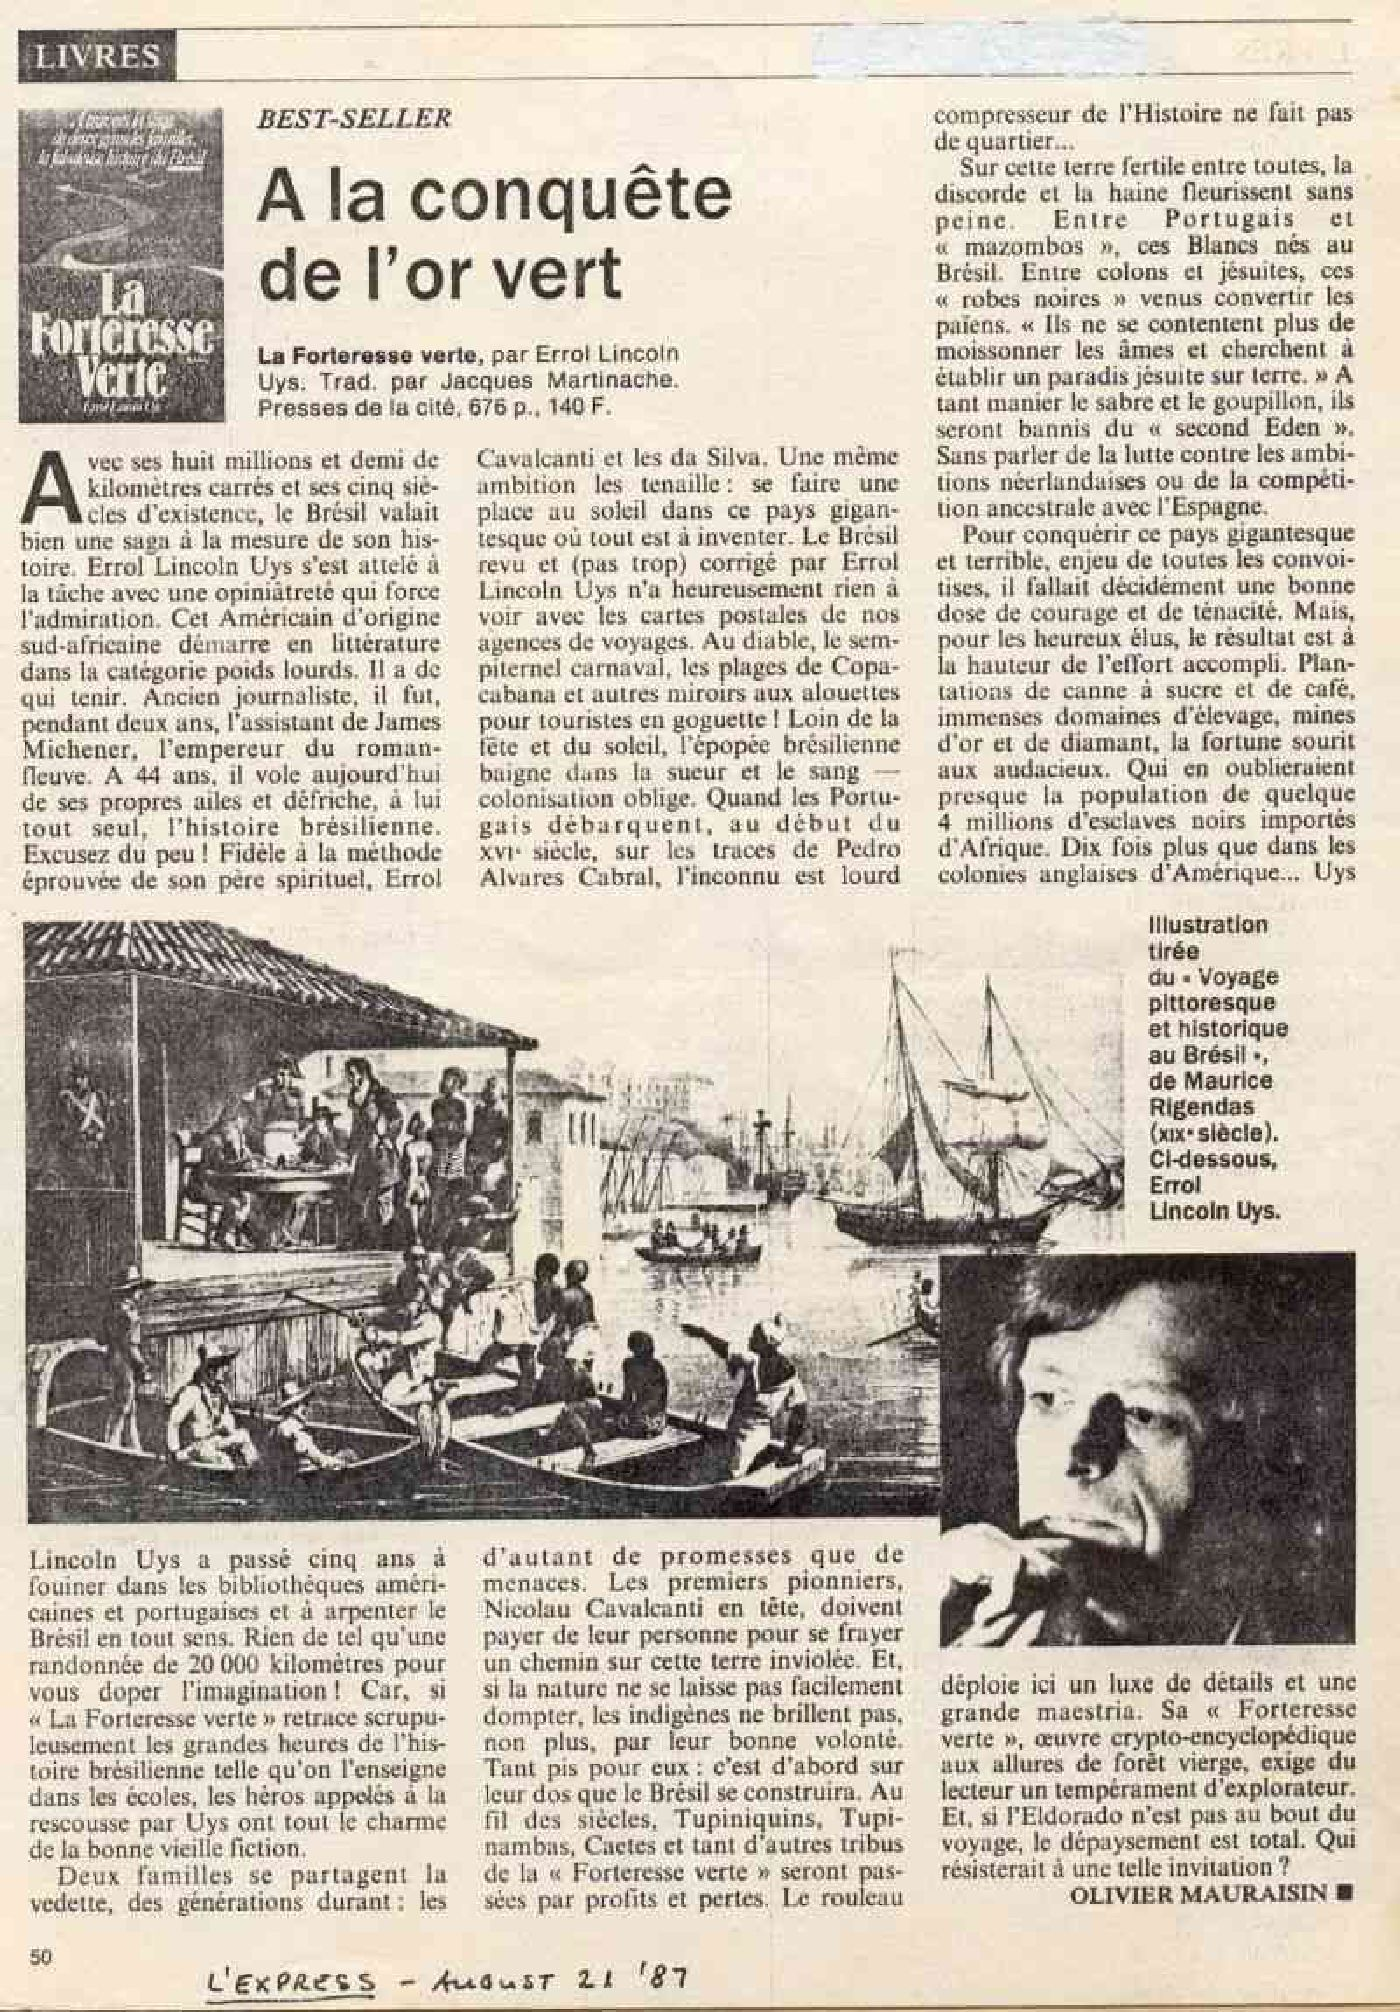 L'Express, Paris - Review of Brazil (La Forteresse Verte) by Errol Lincoln Uys